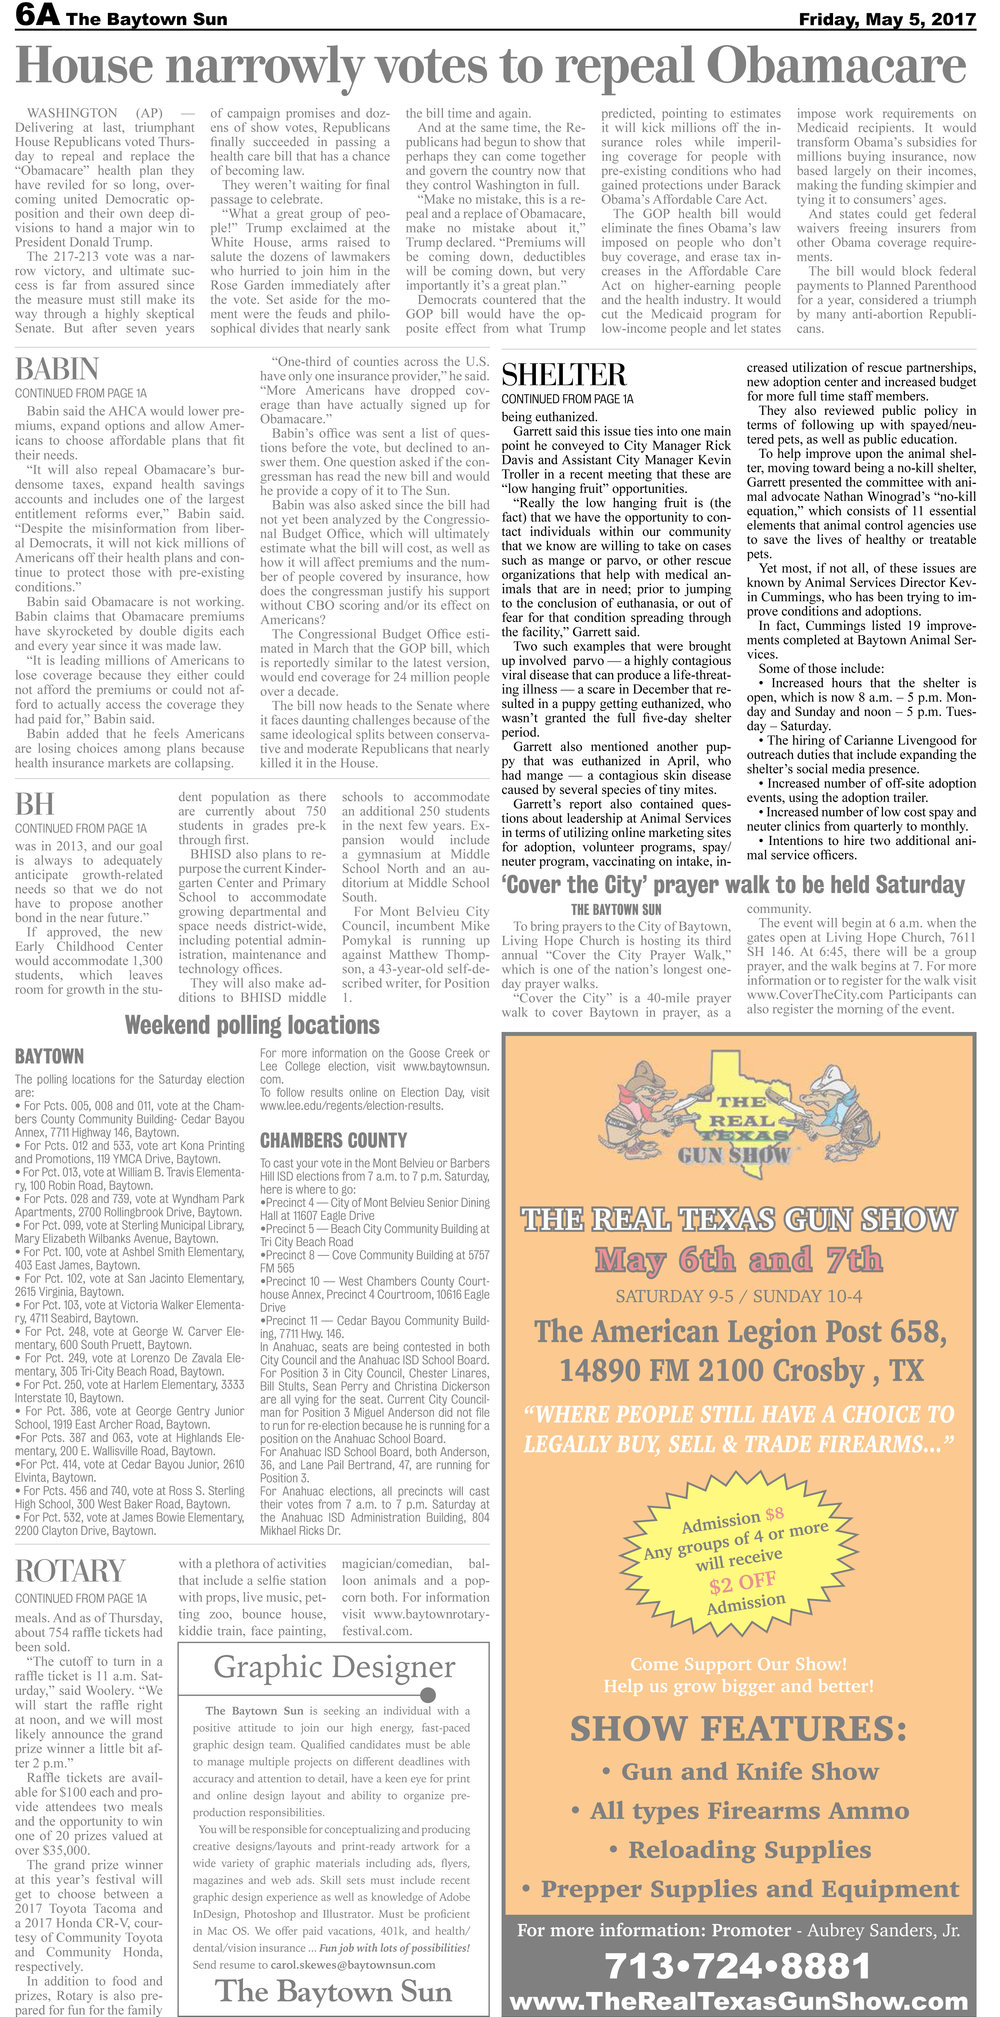 05.05.17 - Baytown Sun - Shelter Improvements - Page 2.jpg